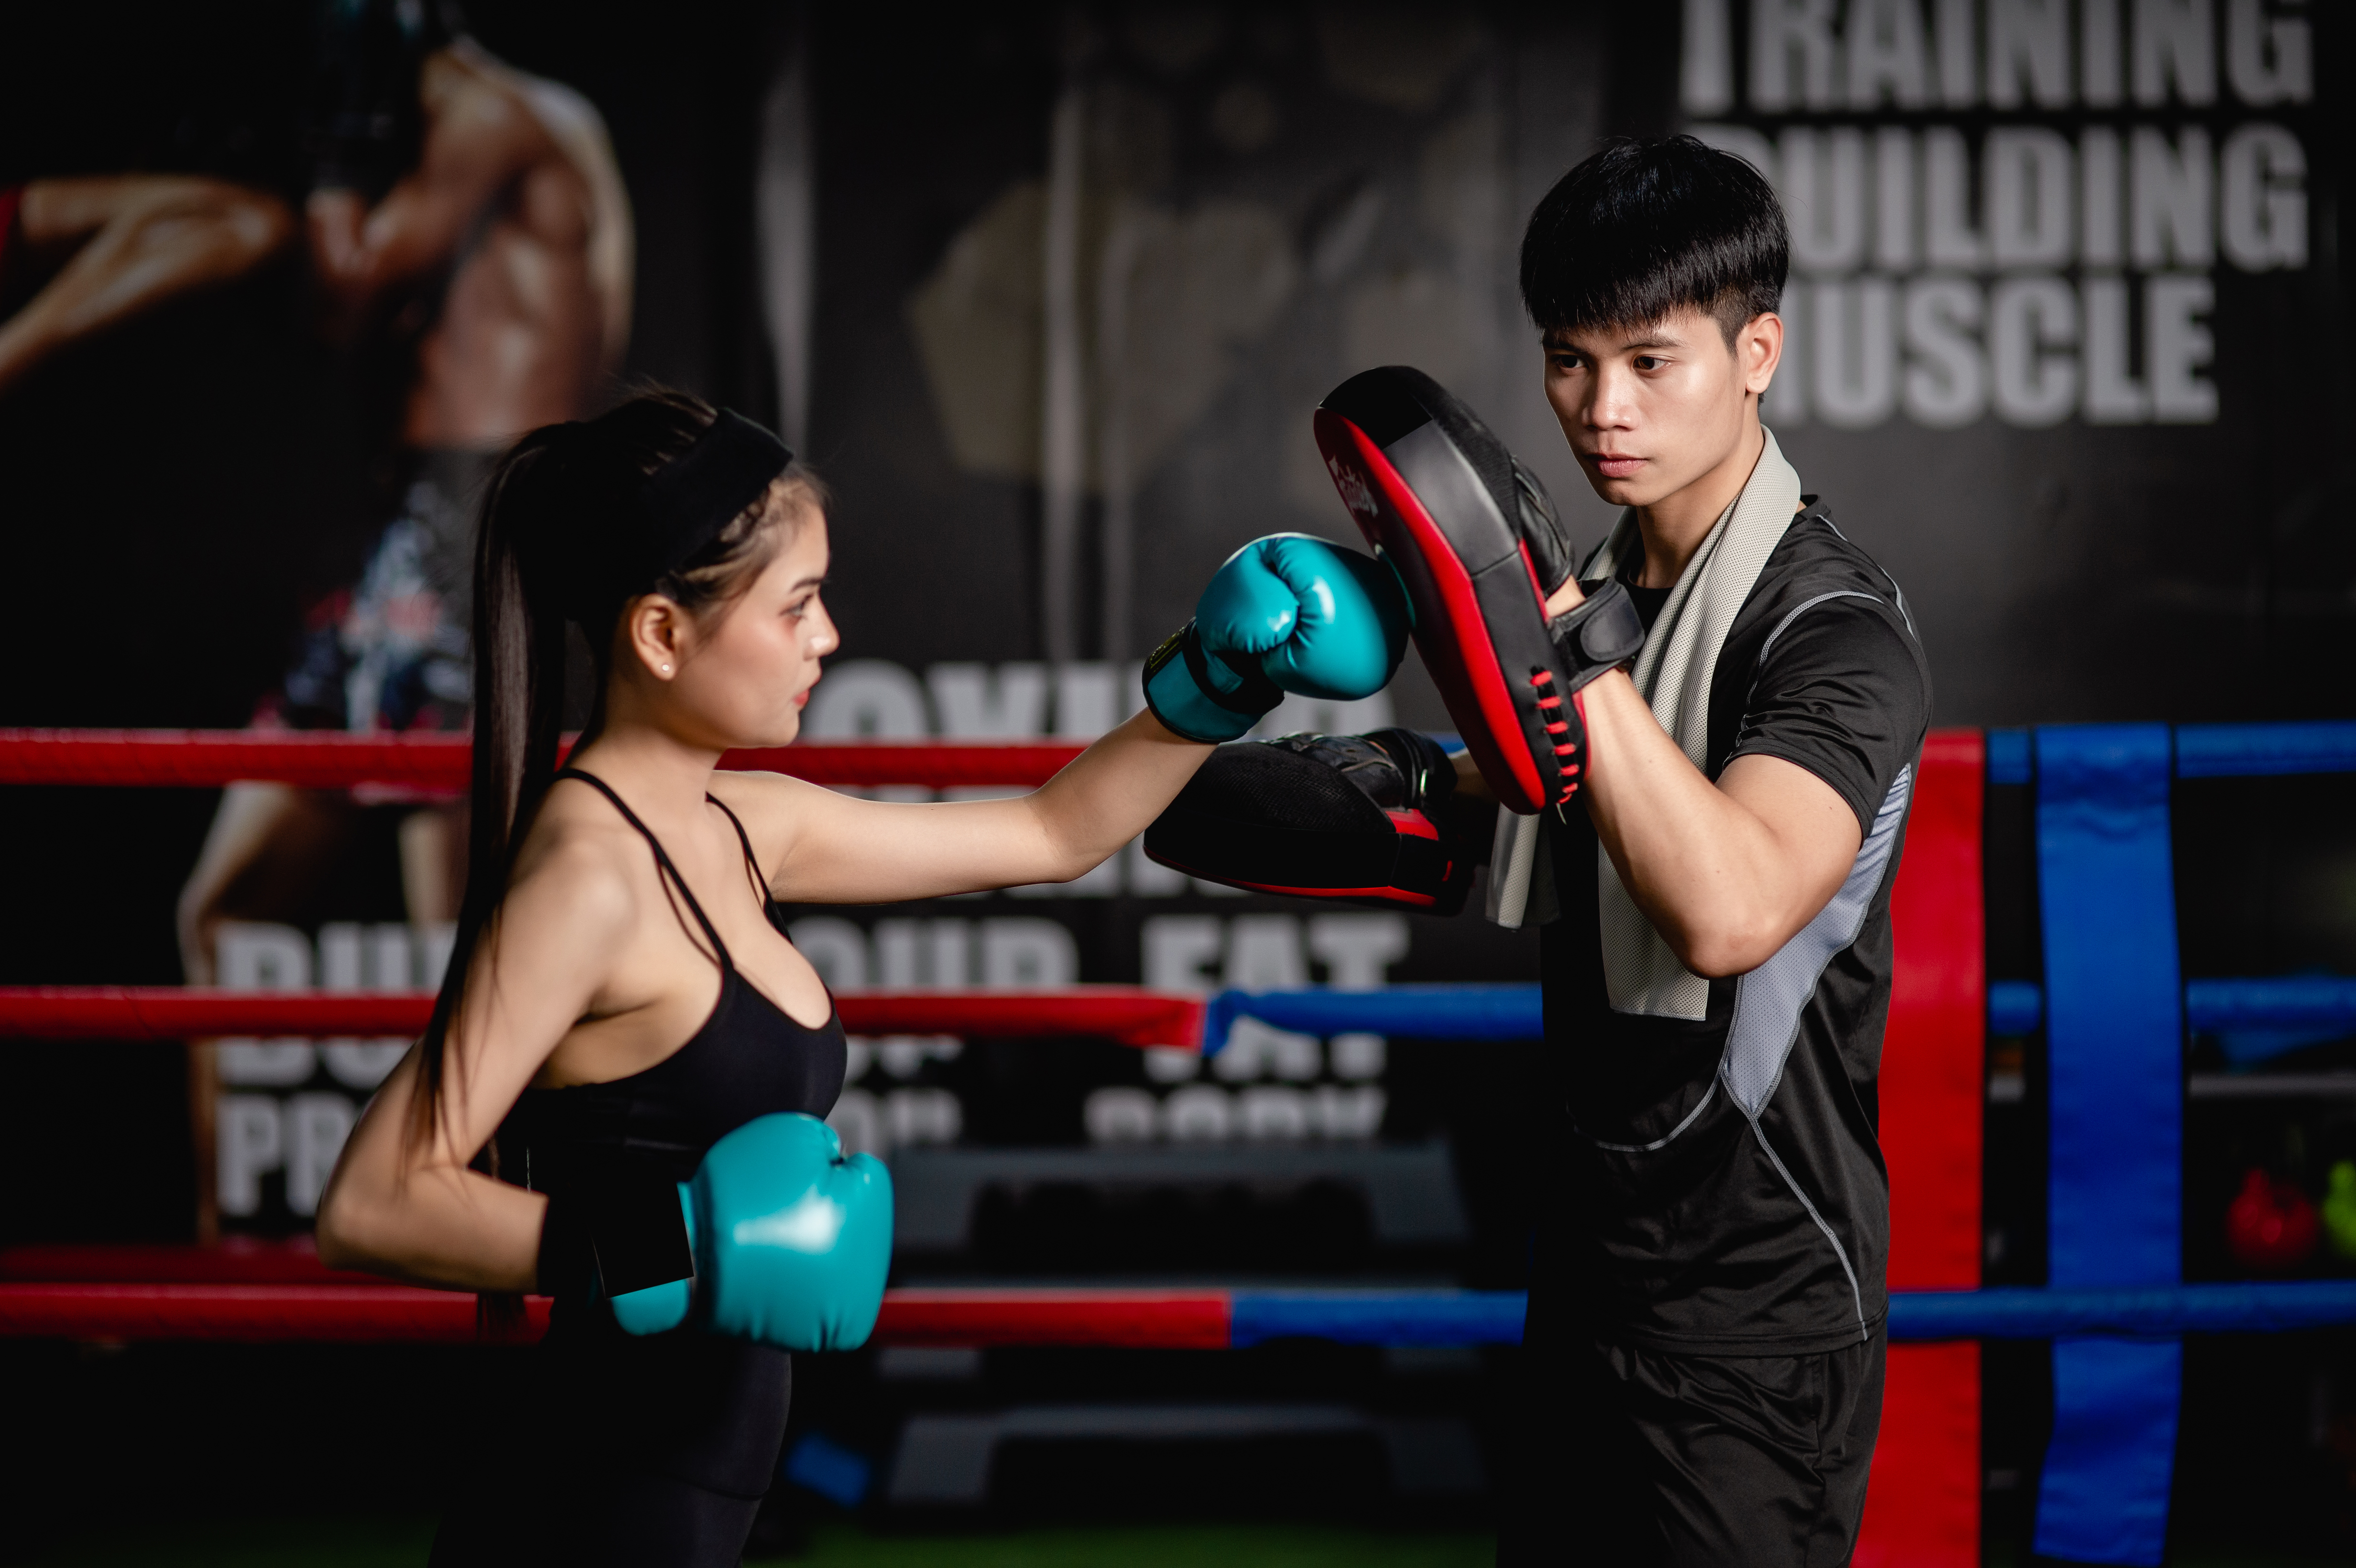 young-fit-woman-doing-exercise-boxing-with-coach-m-2021-06-10-18-43-30-utc